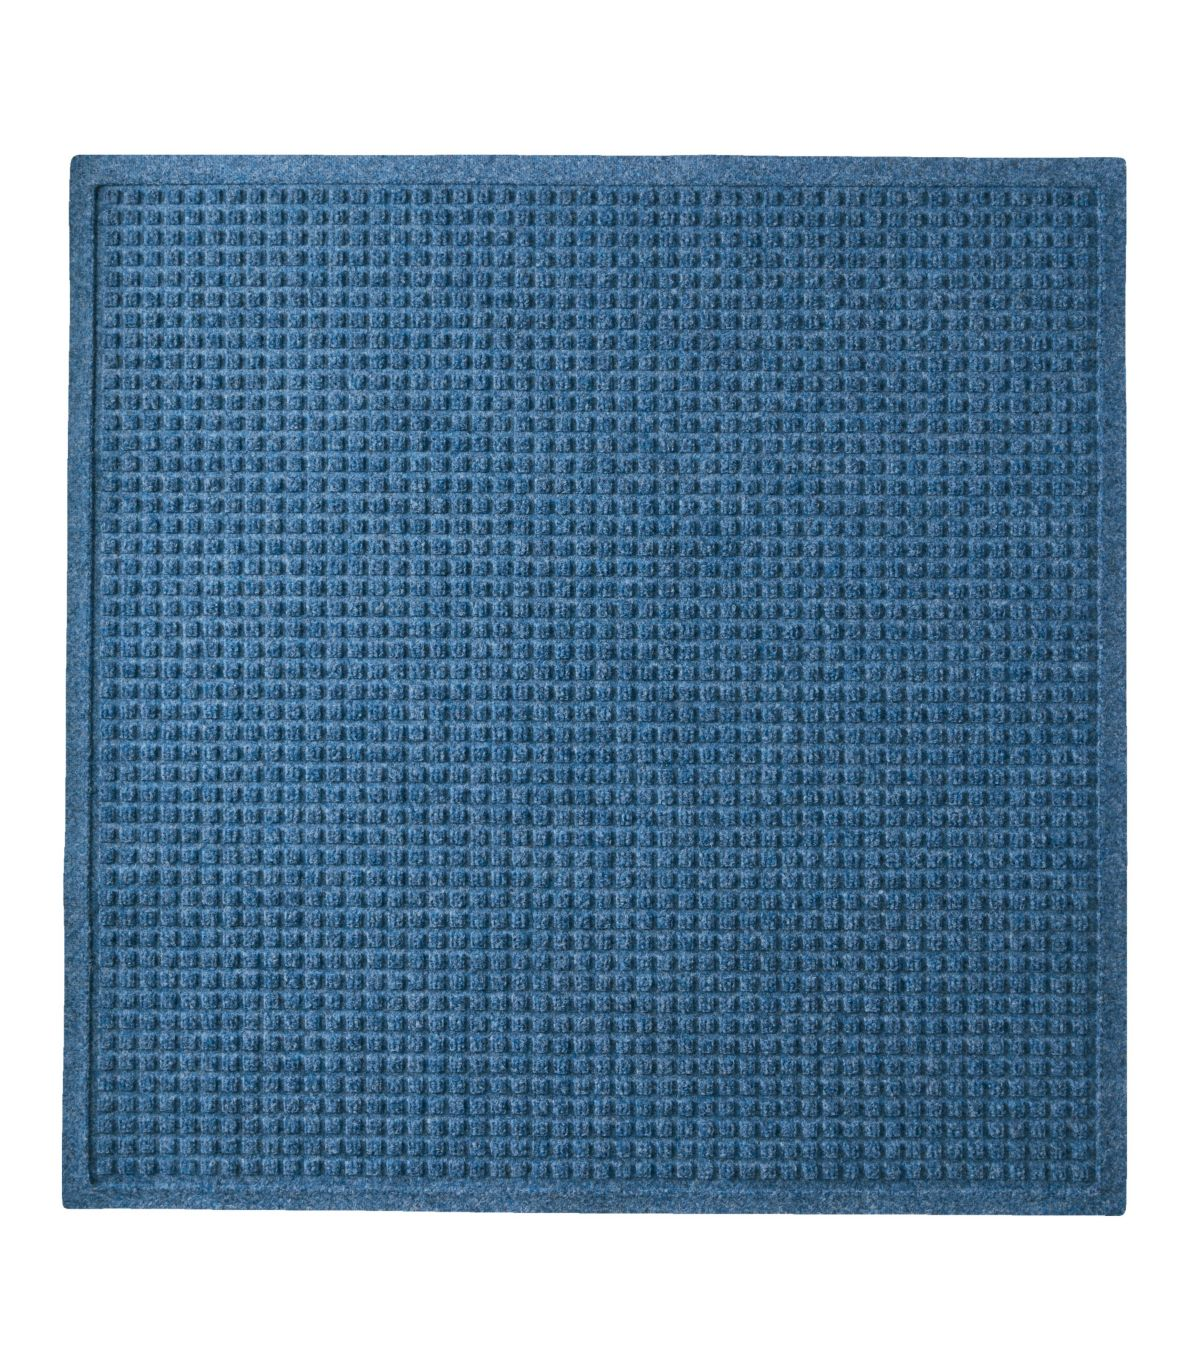 Everyspace Recycled Waterhog Mat, 4' Wide